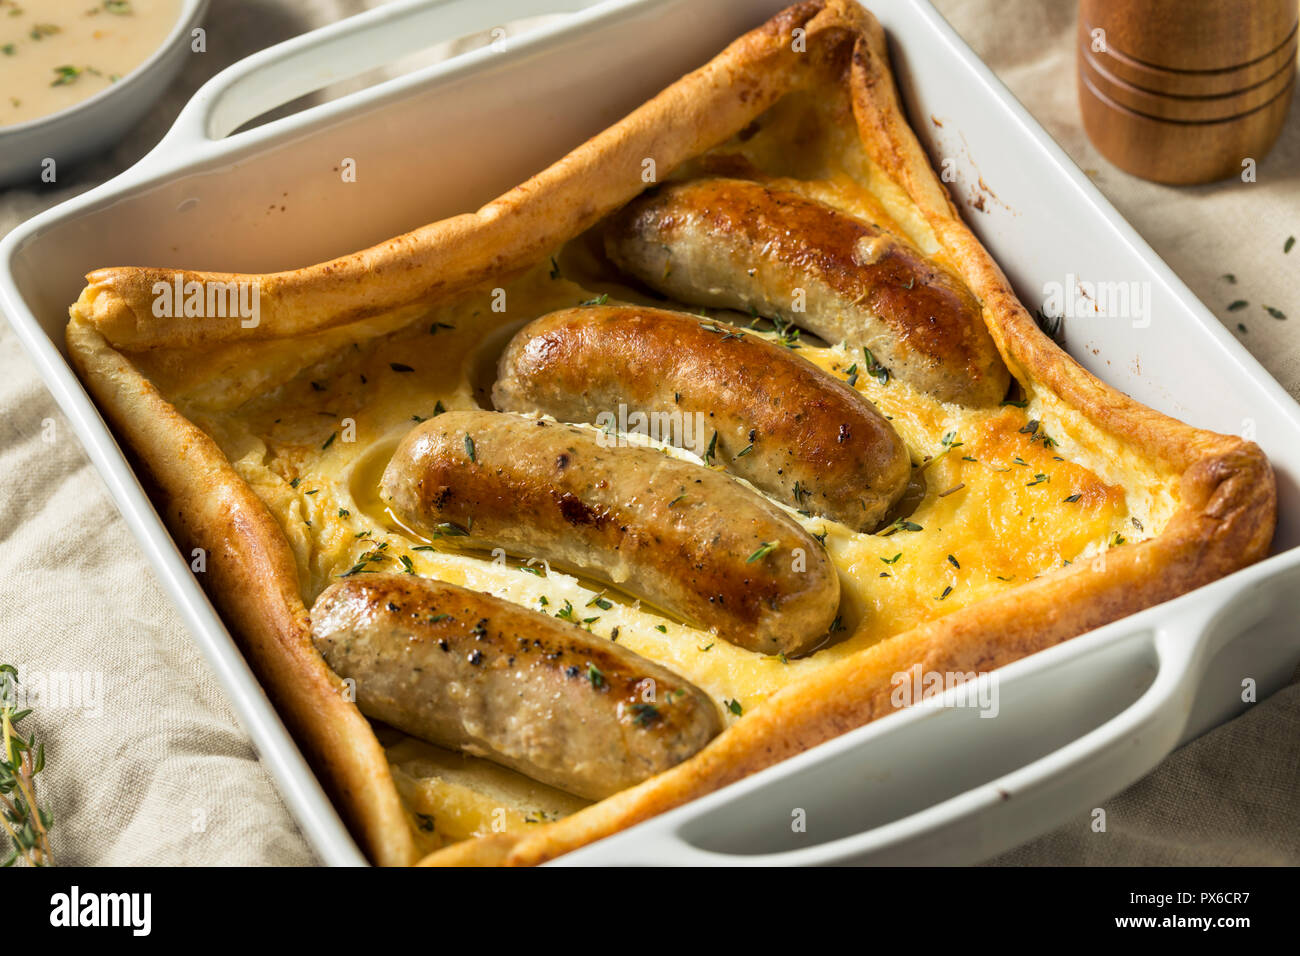 Homemade English Toad in the Hole Ready to Eat - Stock Image